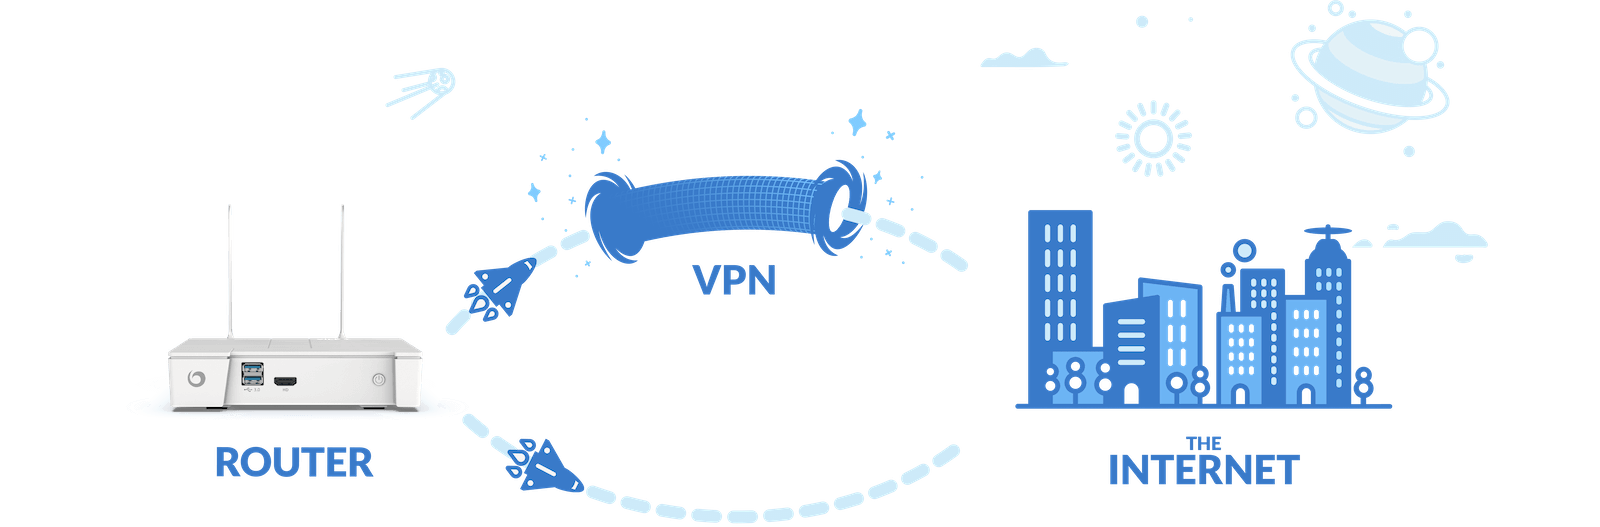 Vilfo router supports VPN split tunneling